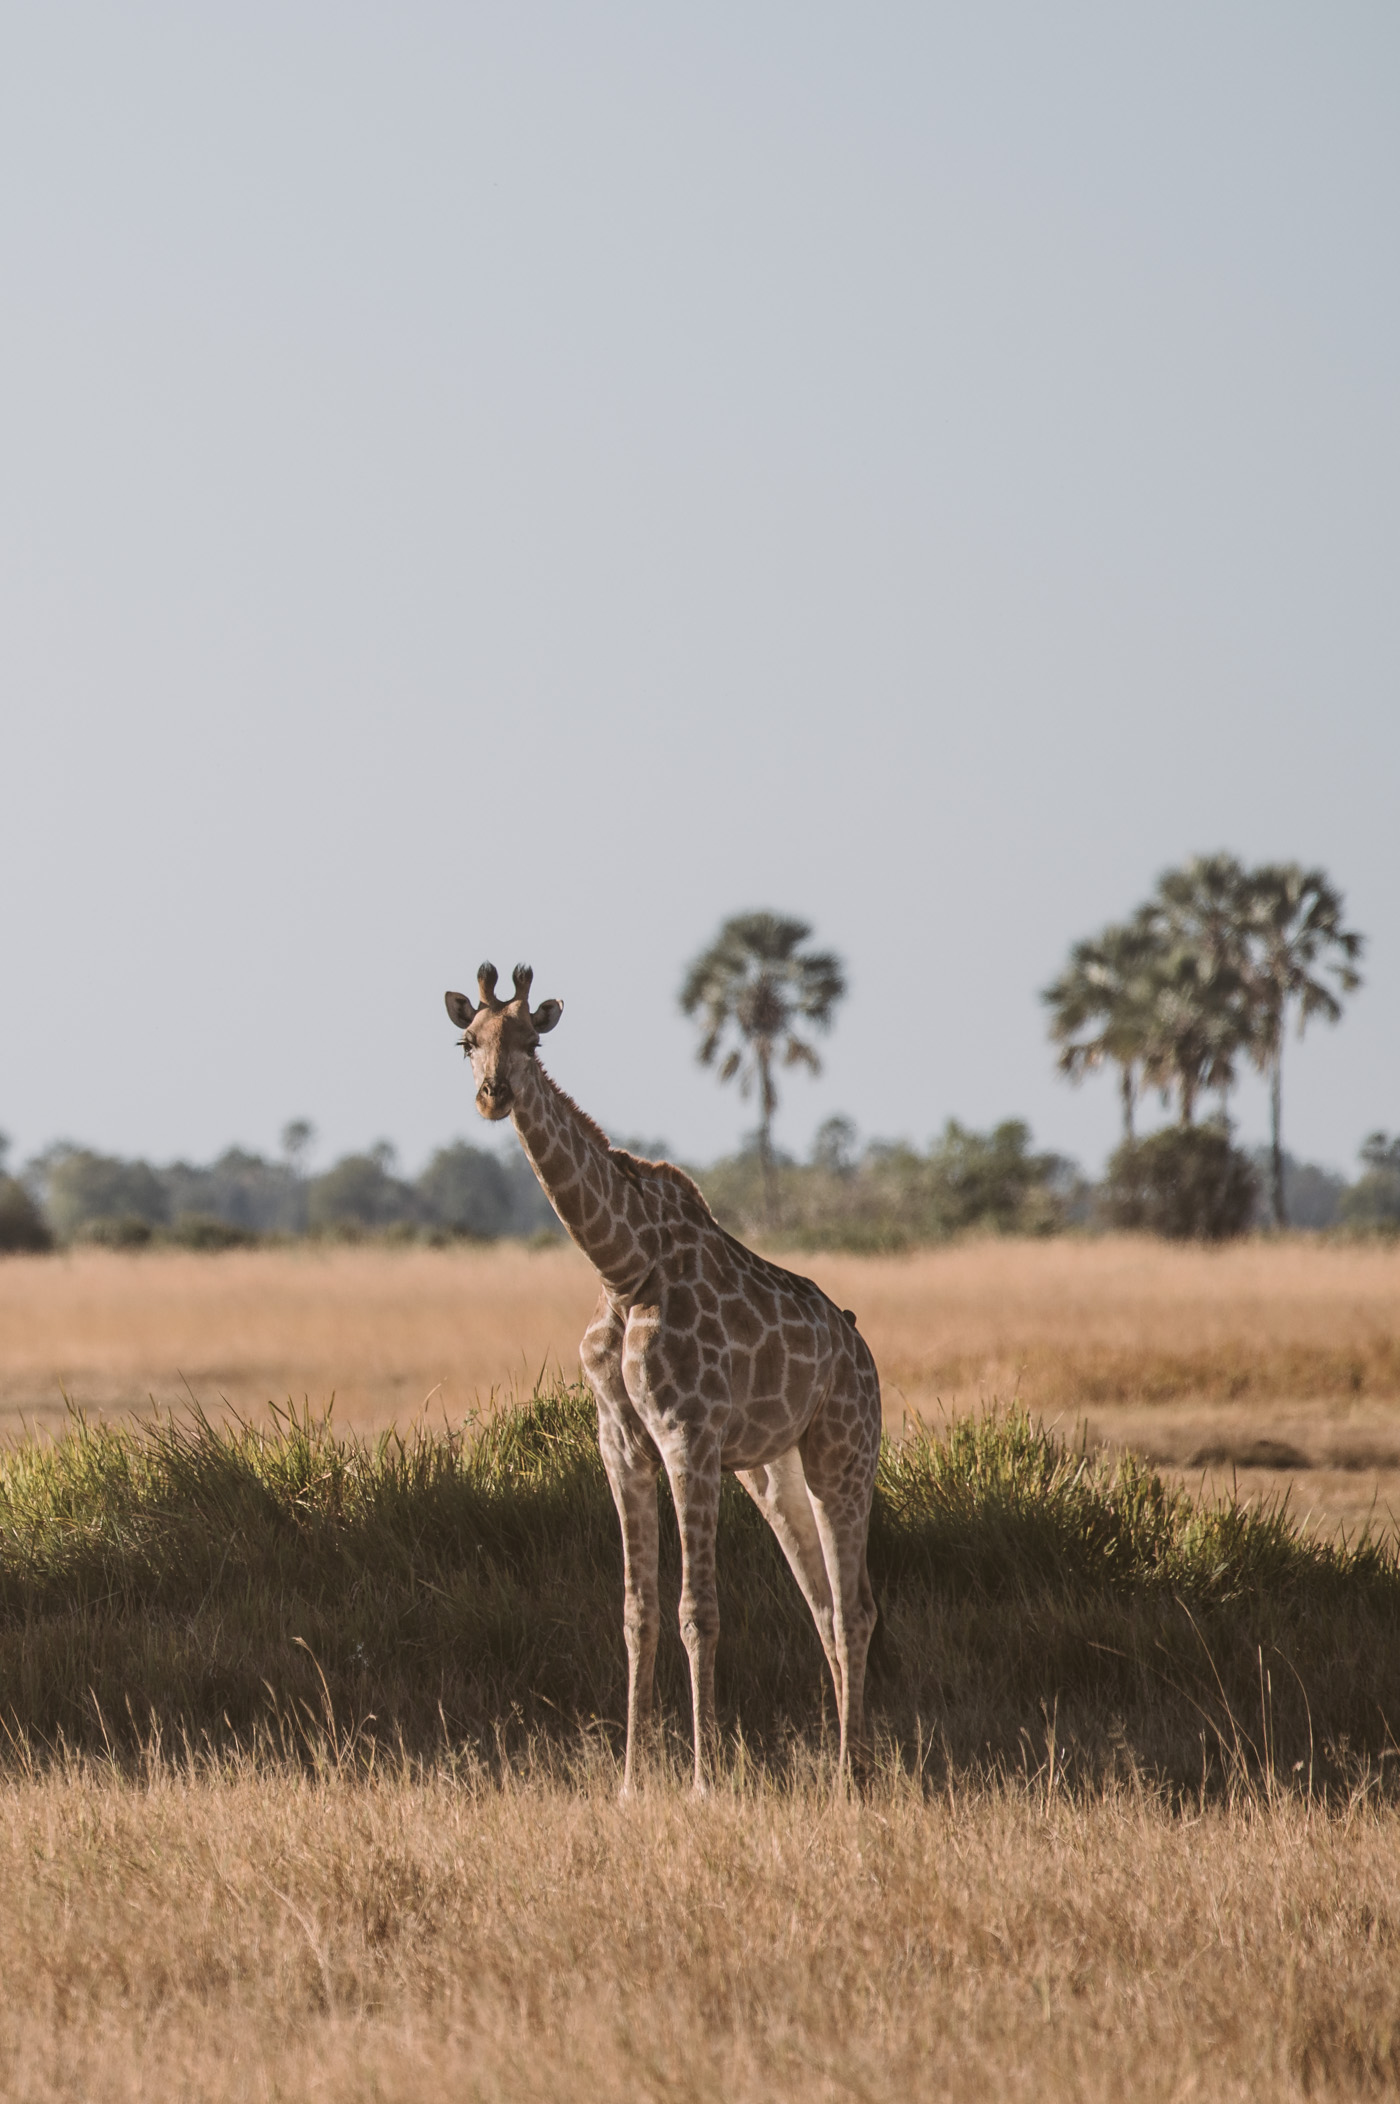 Giraffe in the Okavango Delta in Botswana